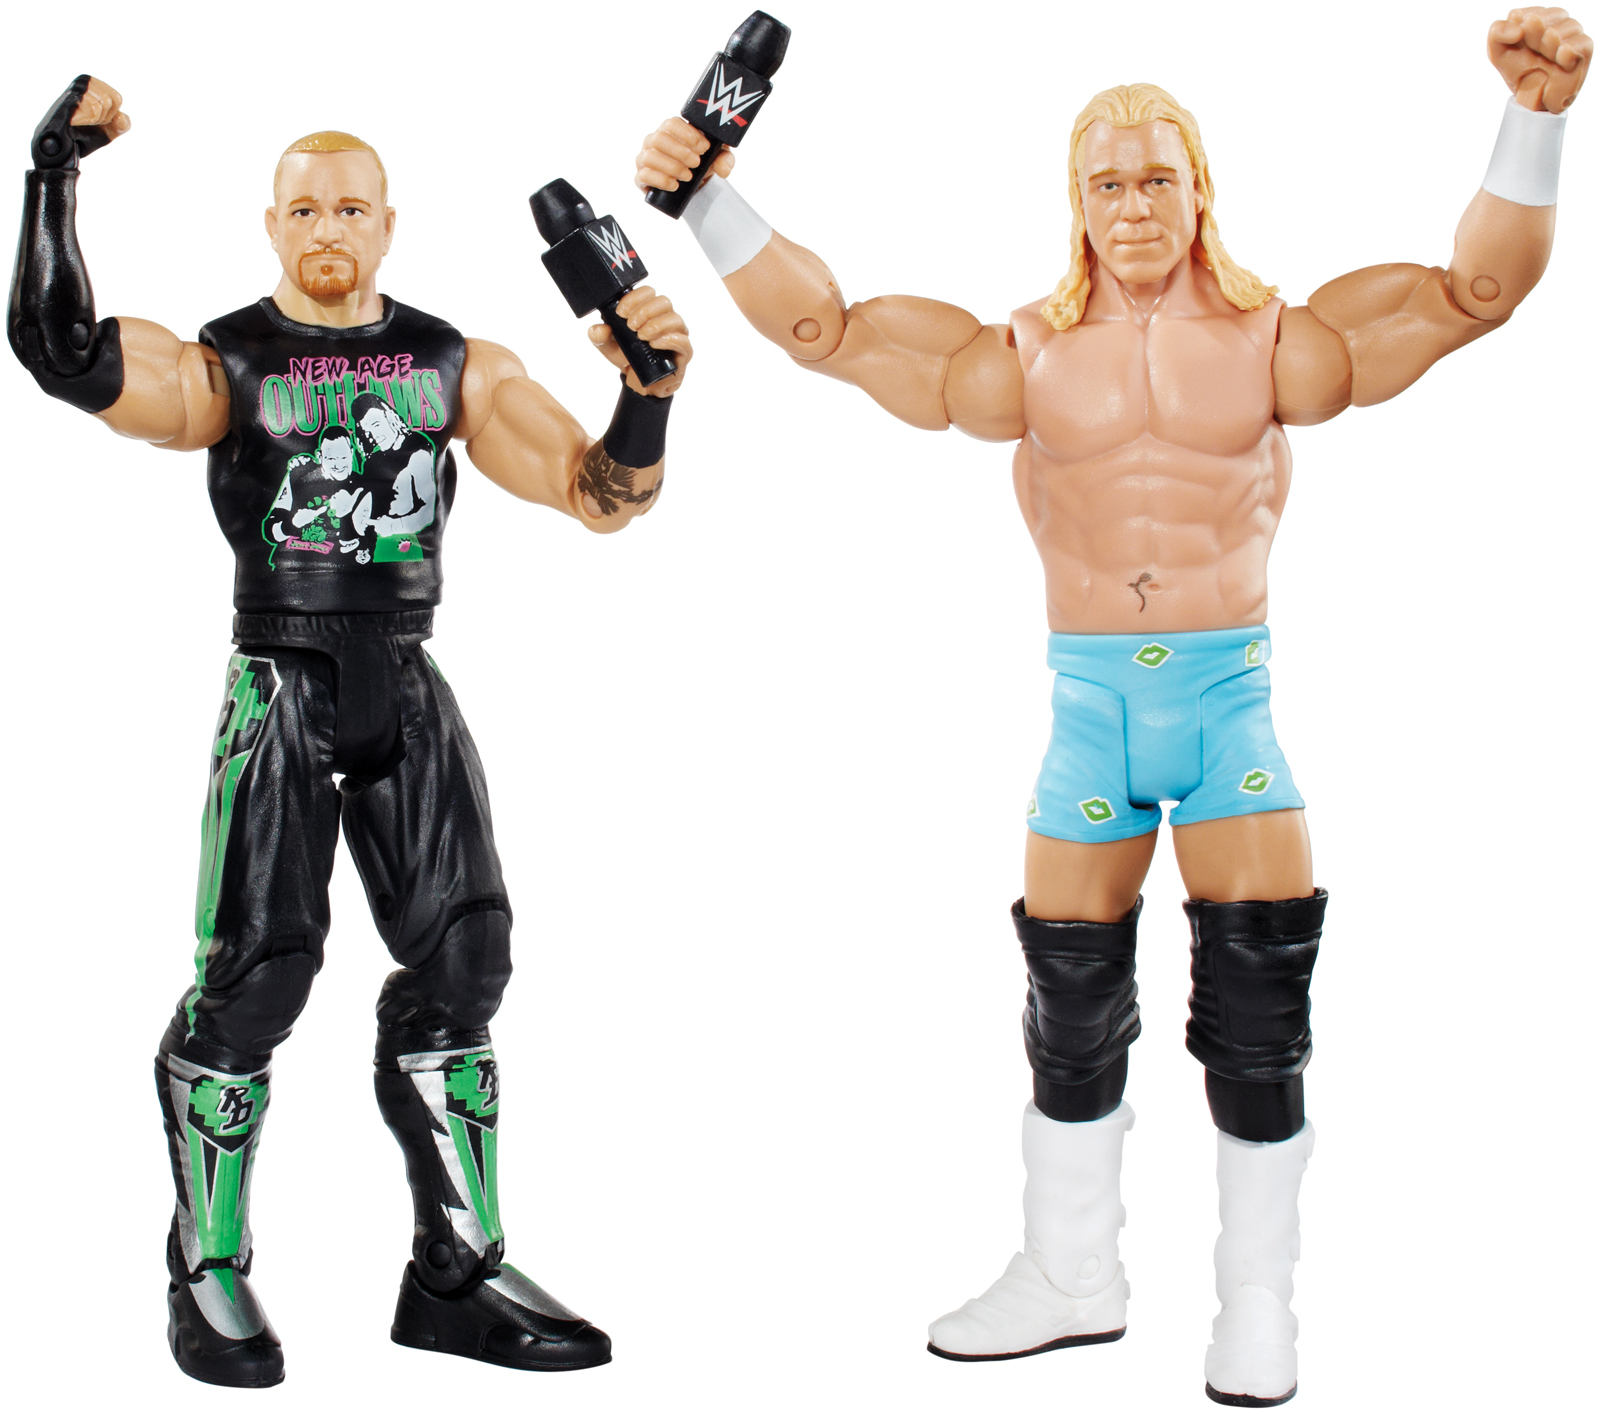 Wwe Age Outlaws Billy Gunn & Road Dogg - Battle Packs 32 Toy Wrestling Action Figures